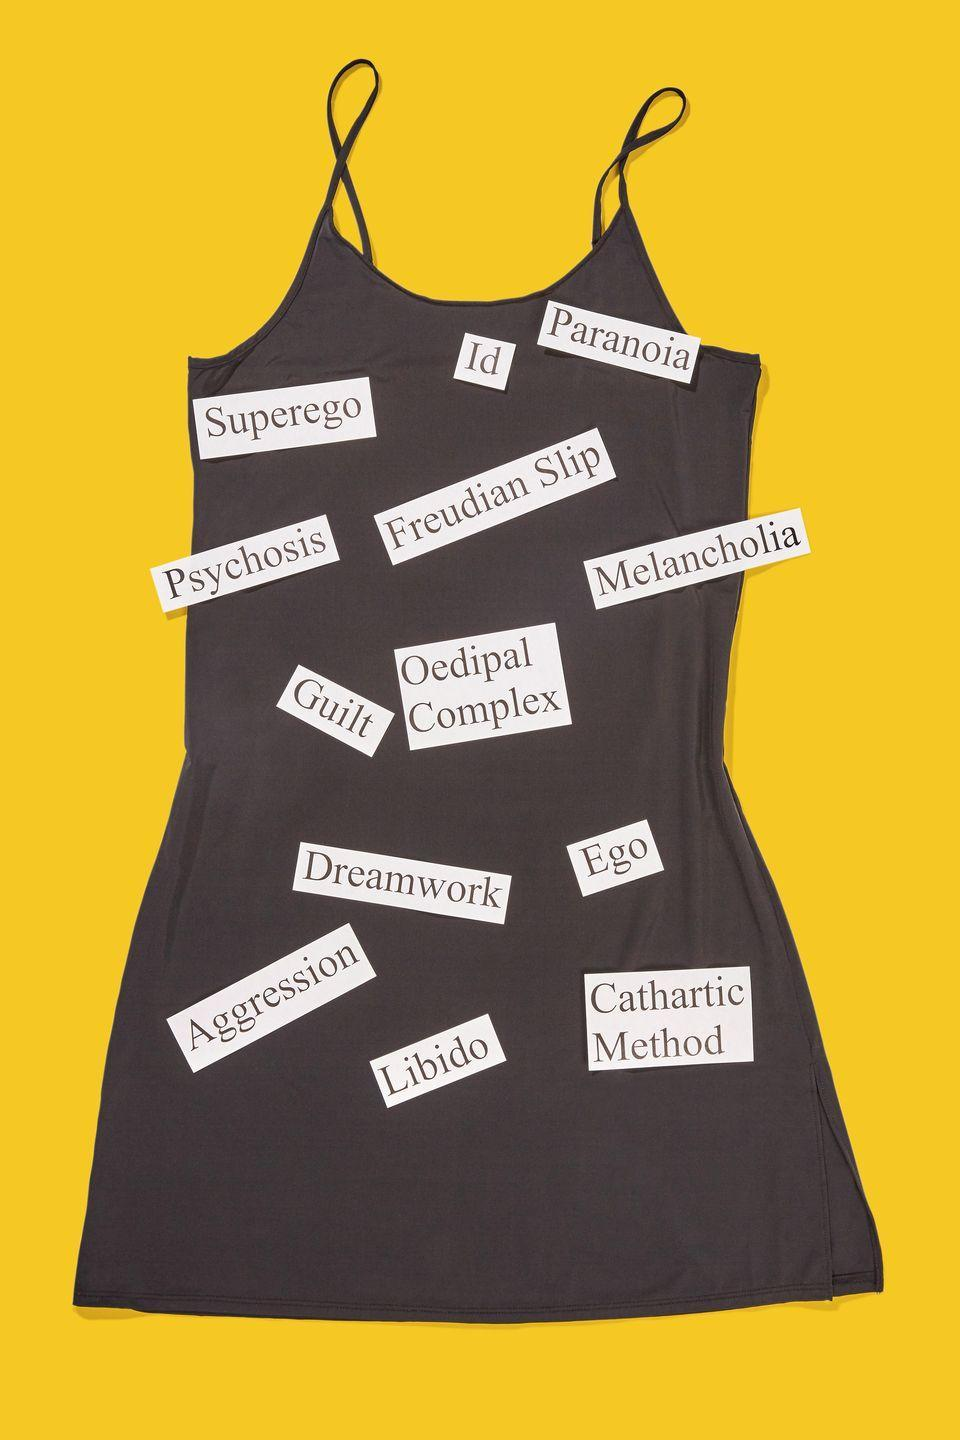 """<p>Psych everyone out by wearing a slip dress and attaching well-know terms coined by Sigmund Freud. </p><p><a class=""""link rapid-noclick-resp"""" href=""""https://www.amazon.com/AUHEGN-Womens-Adjustable-Spaghetti-X-Large/dp/B07RSJ6KP5/?tag=syn-yahoo-20&ascsubtag=%5Bartid%7C10070.g.490%5Bsrc%7Cyahoo-us"""" rel=""""nofollow noopener"""" target=""""_blank"""" data-ylk=""""slk:SHOP SLIP DRESSES"""">SHOP SLIP DRESSES</a> </p>"""